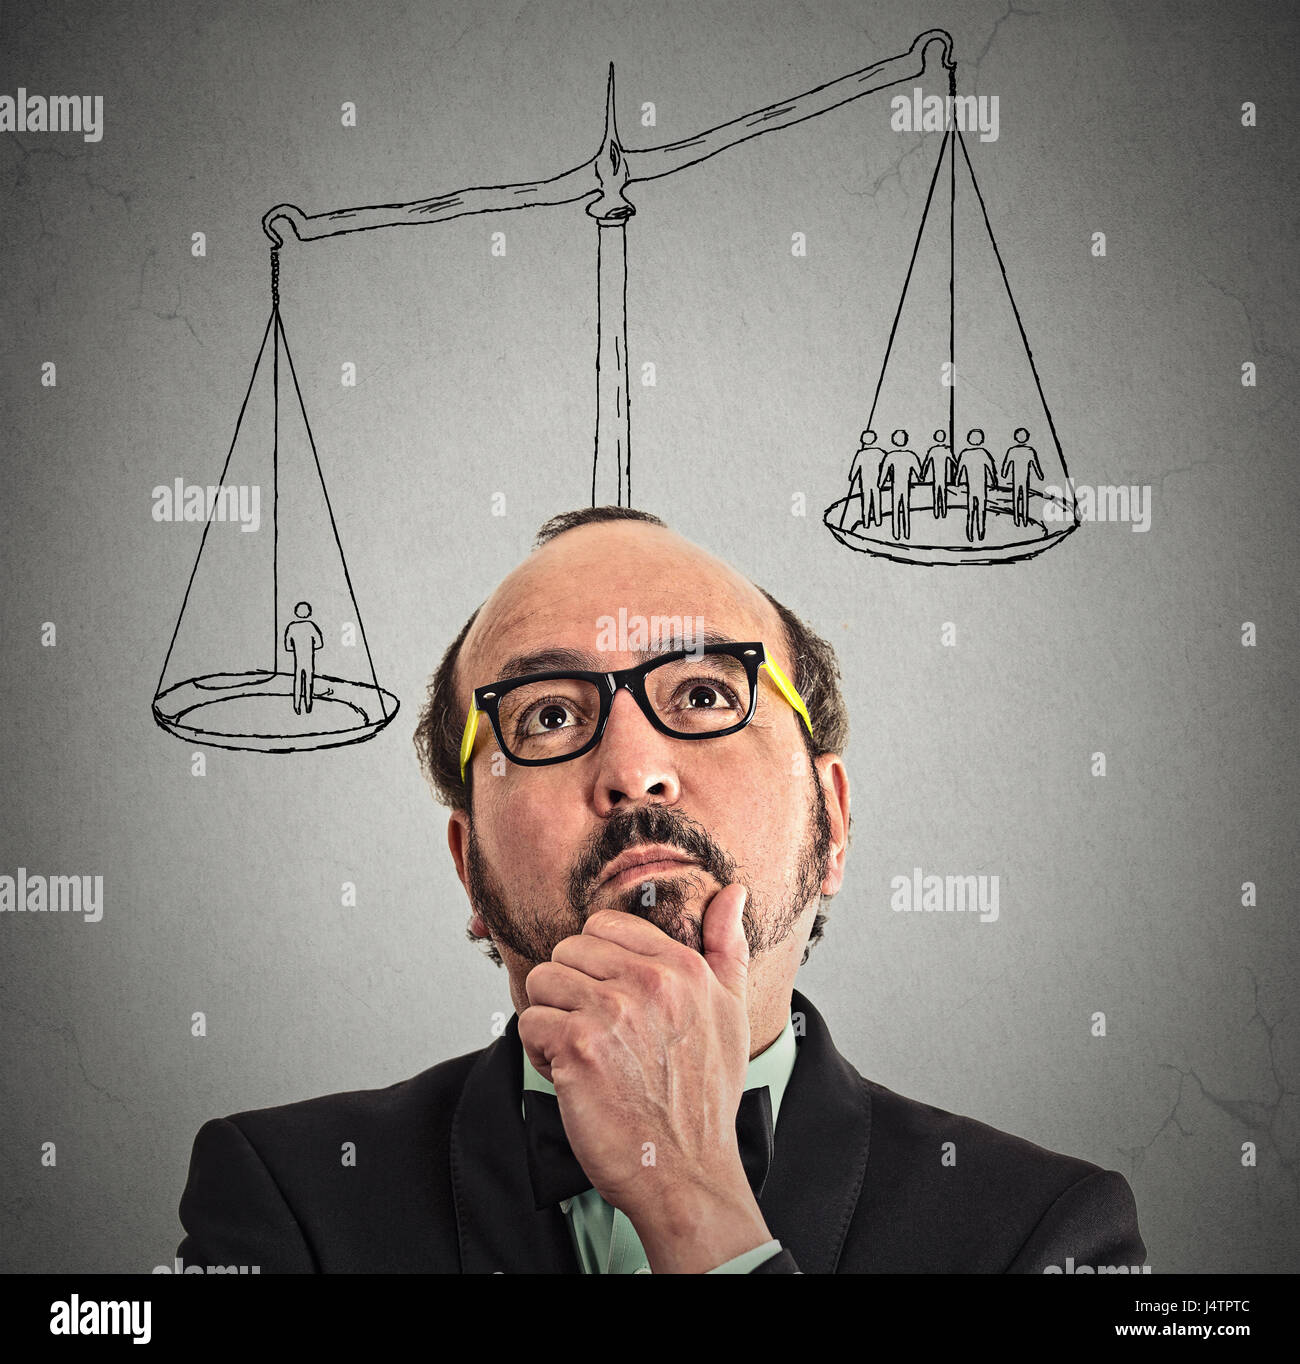 businessman with scale above head one man weighting more than group off business people on a balance. Power, opinion, - Stock Image